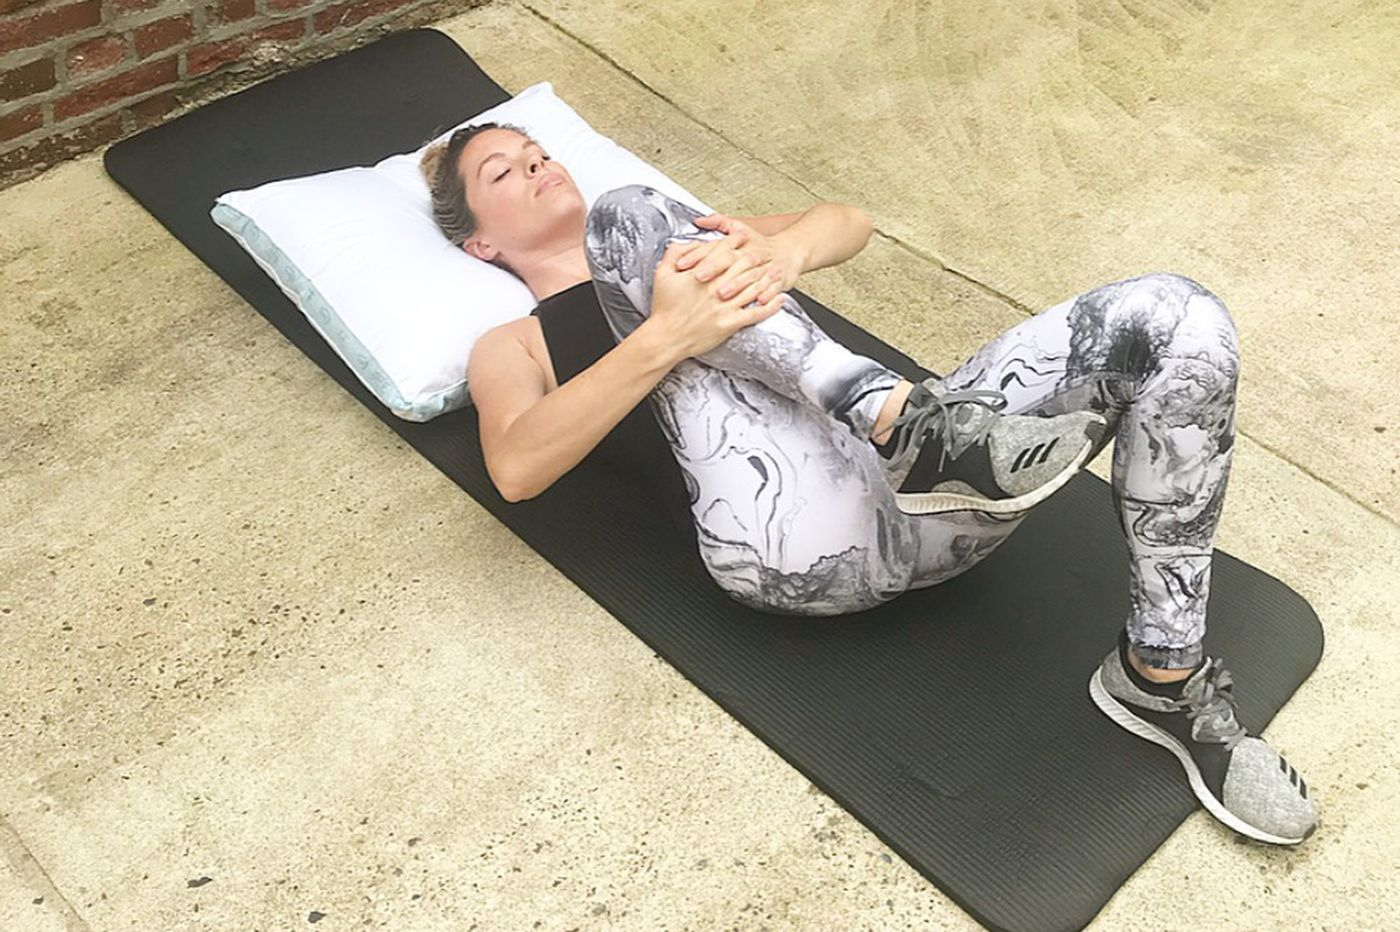 Tossing and turning? Fall asleep faster with these 3 stretches